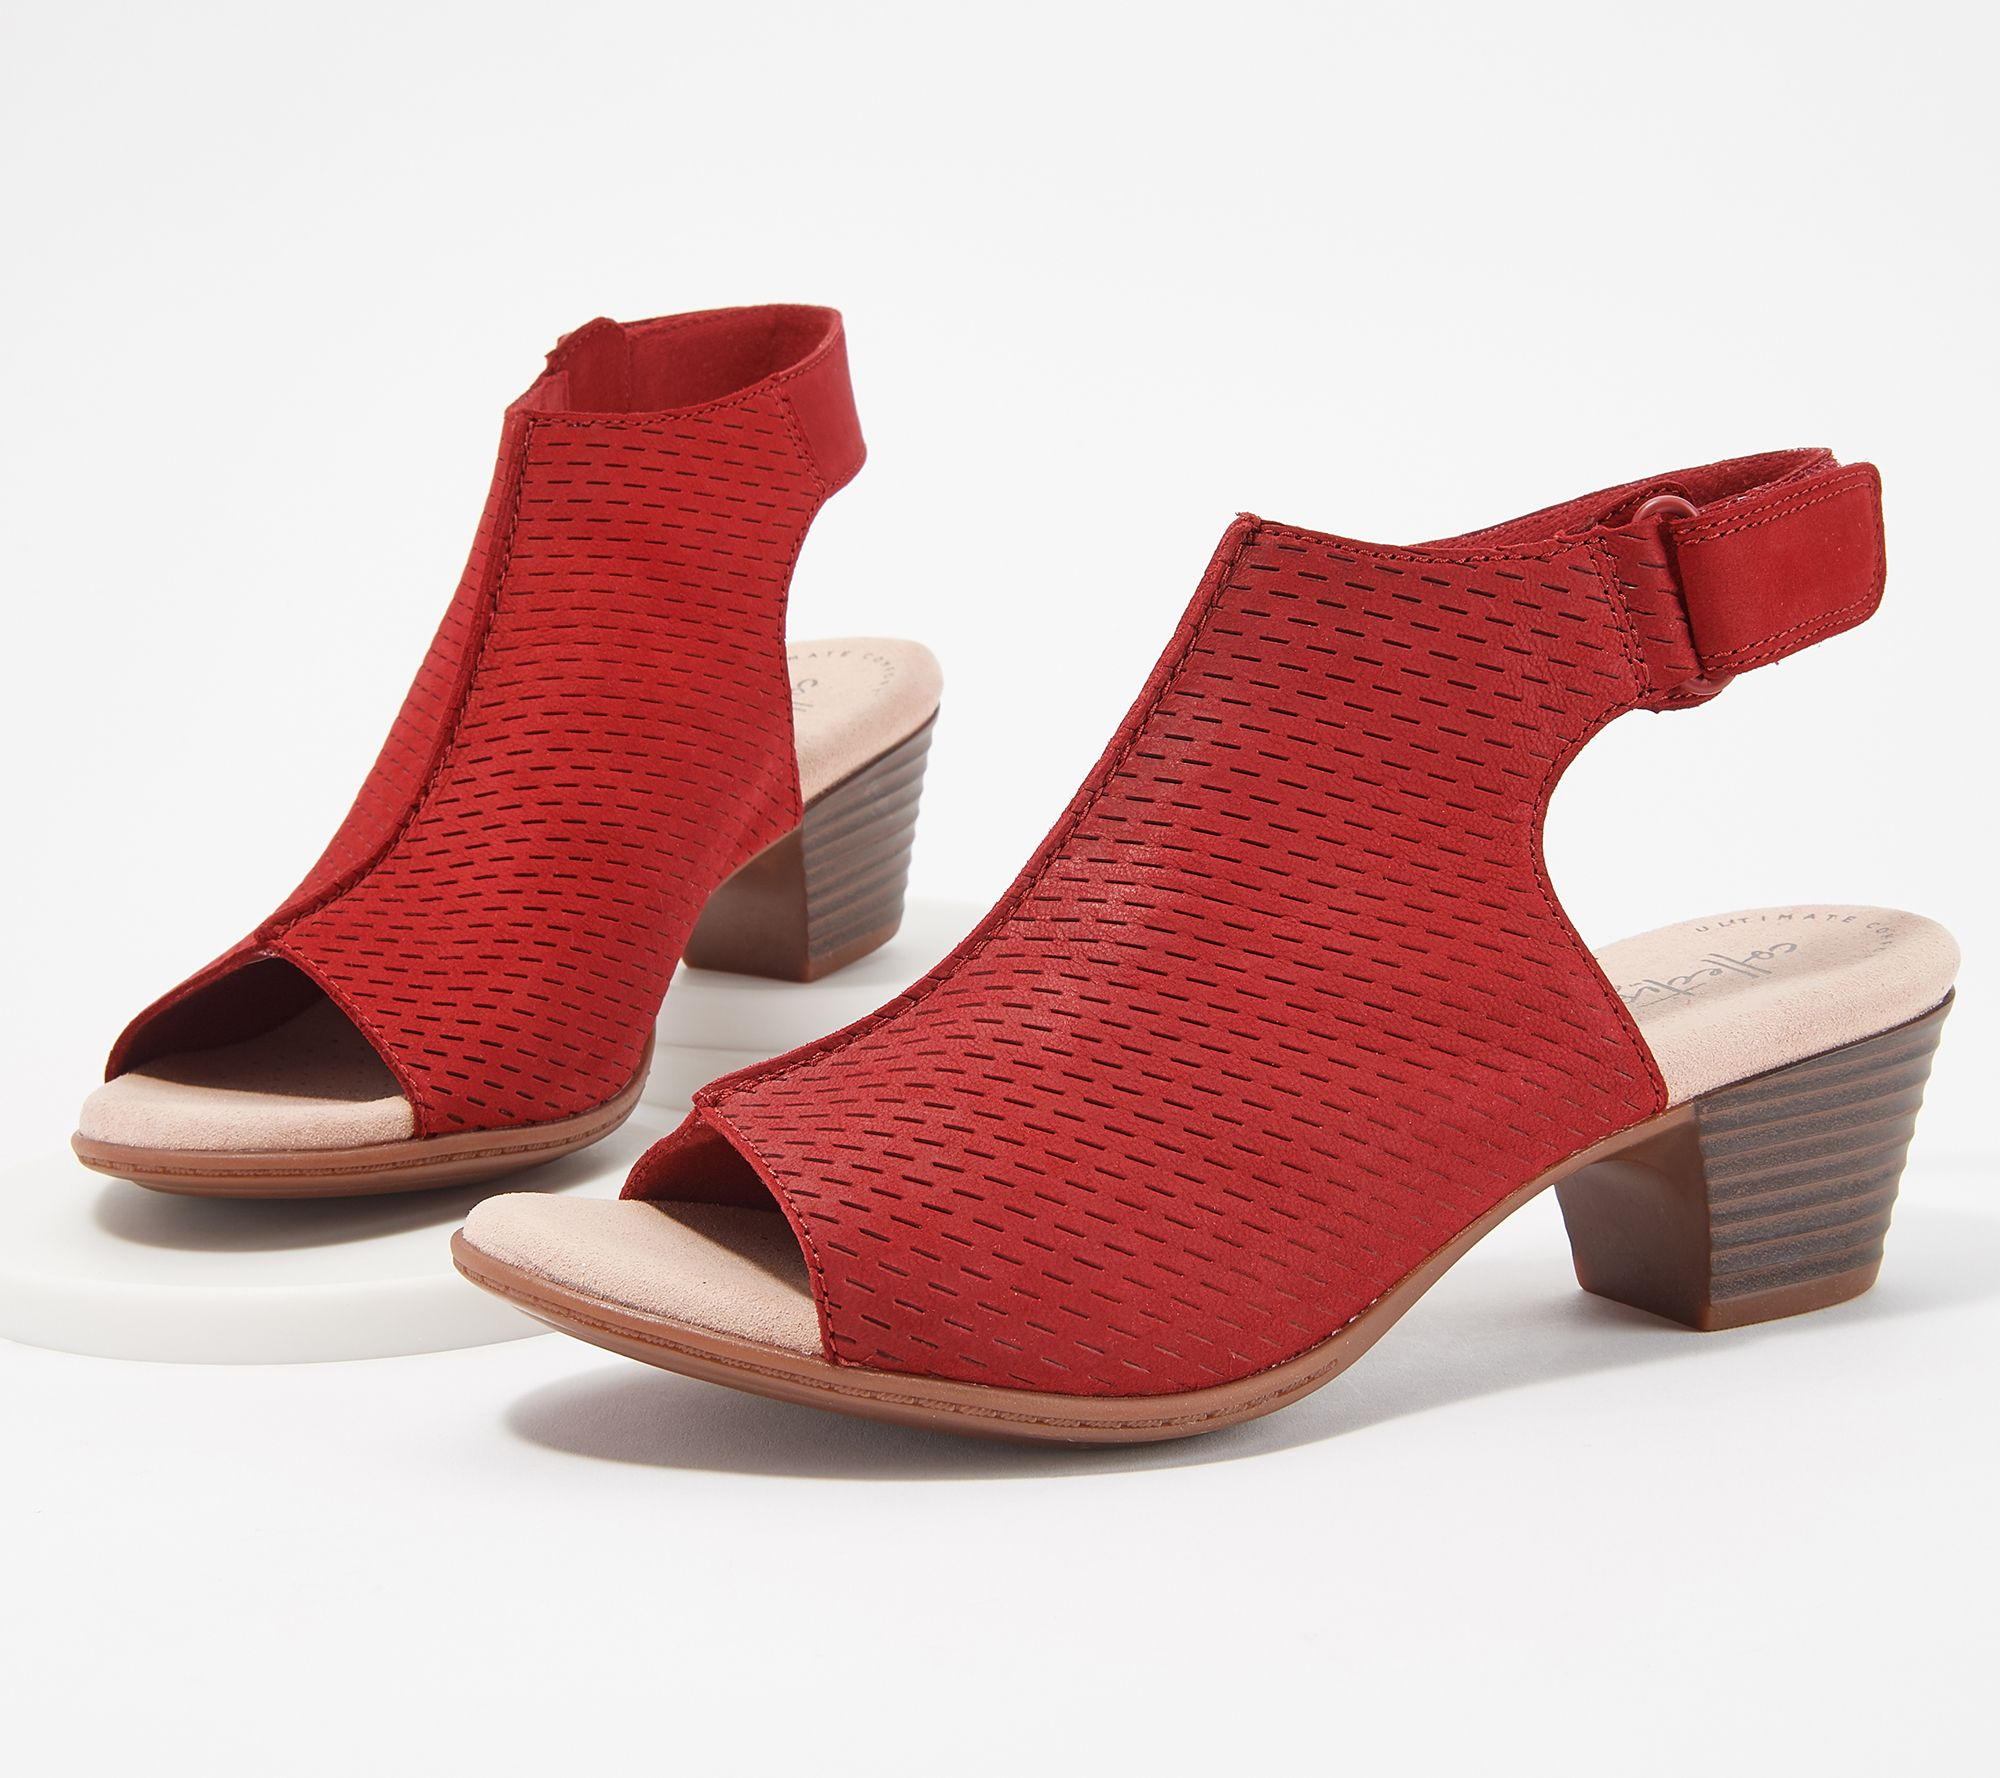 ea1deeae155a Clarks Nubuck Leather Perforated Heeled Sandals- Valarie James - Page 1 —  QVC.com